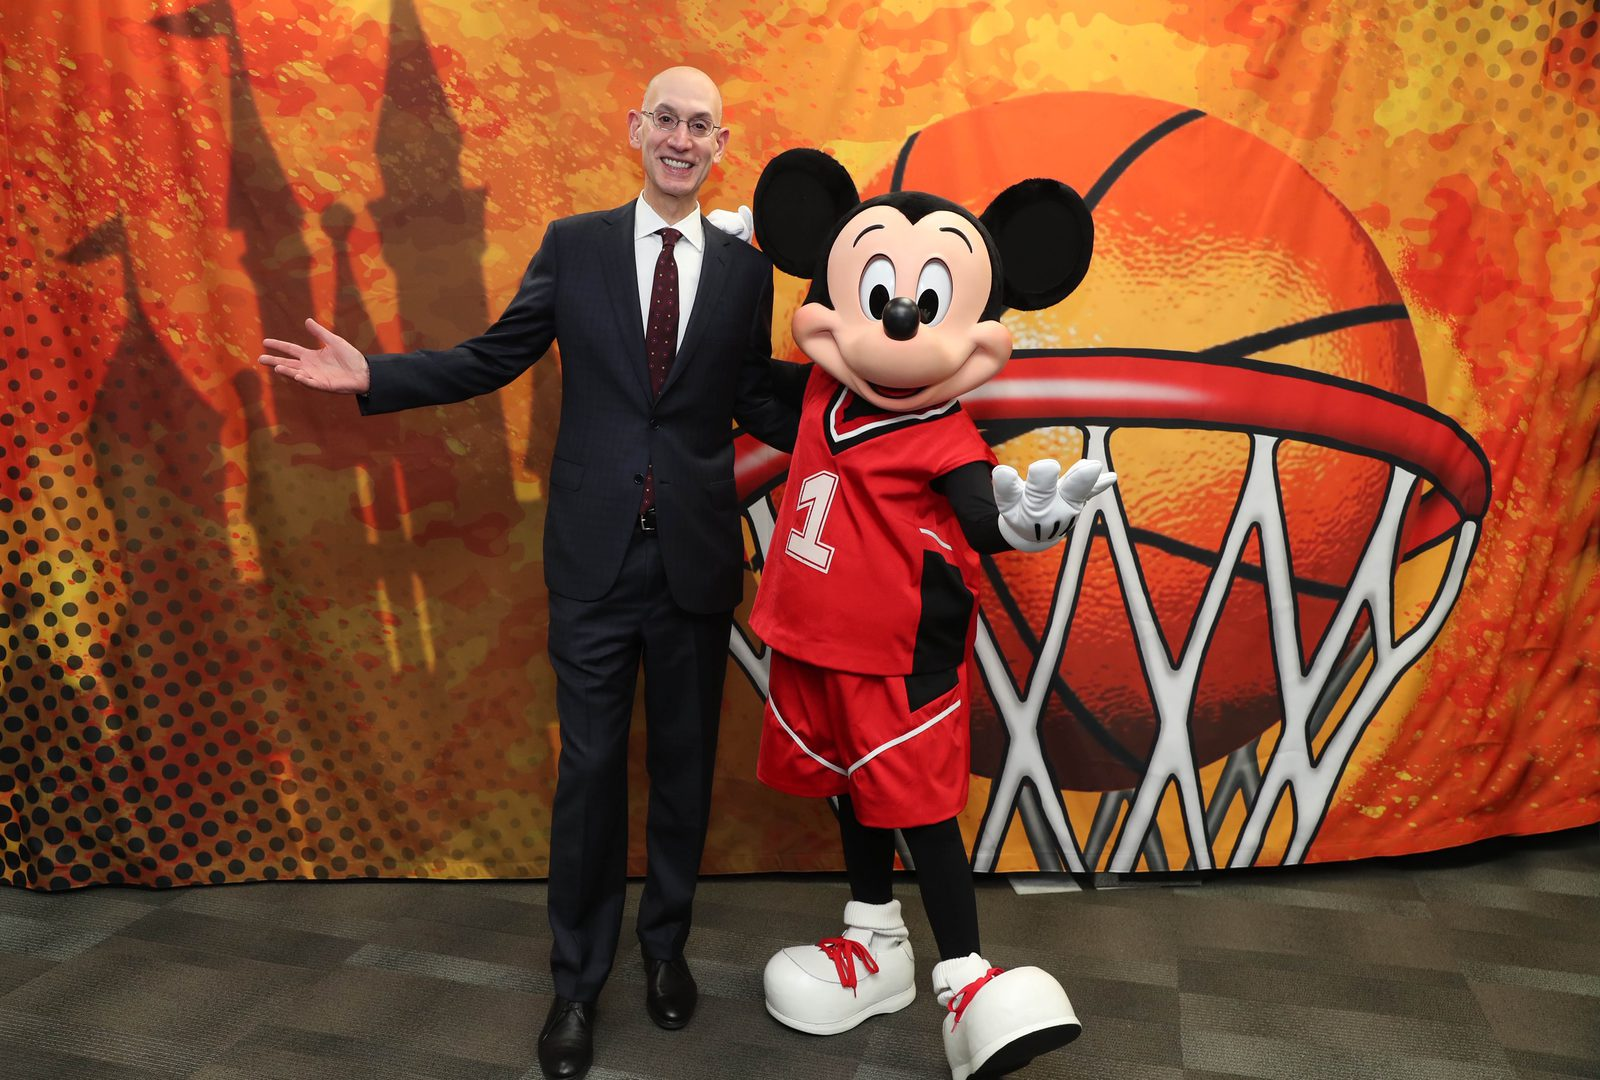 NBA Commissioner, Adam Silver and Mickey Mouse meet during NBA All Star Weekend in Charlotte, North Carolina on February 15, 2019 at Bojangles Coliseum.